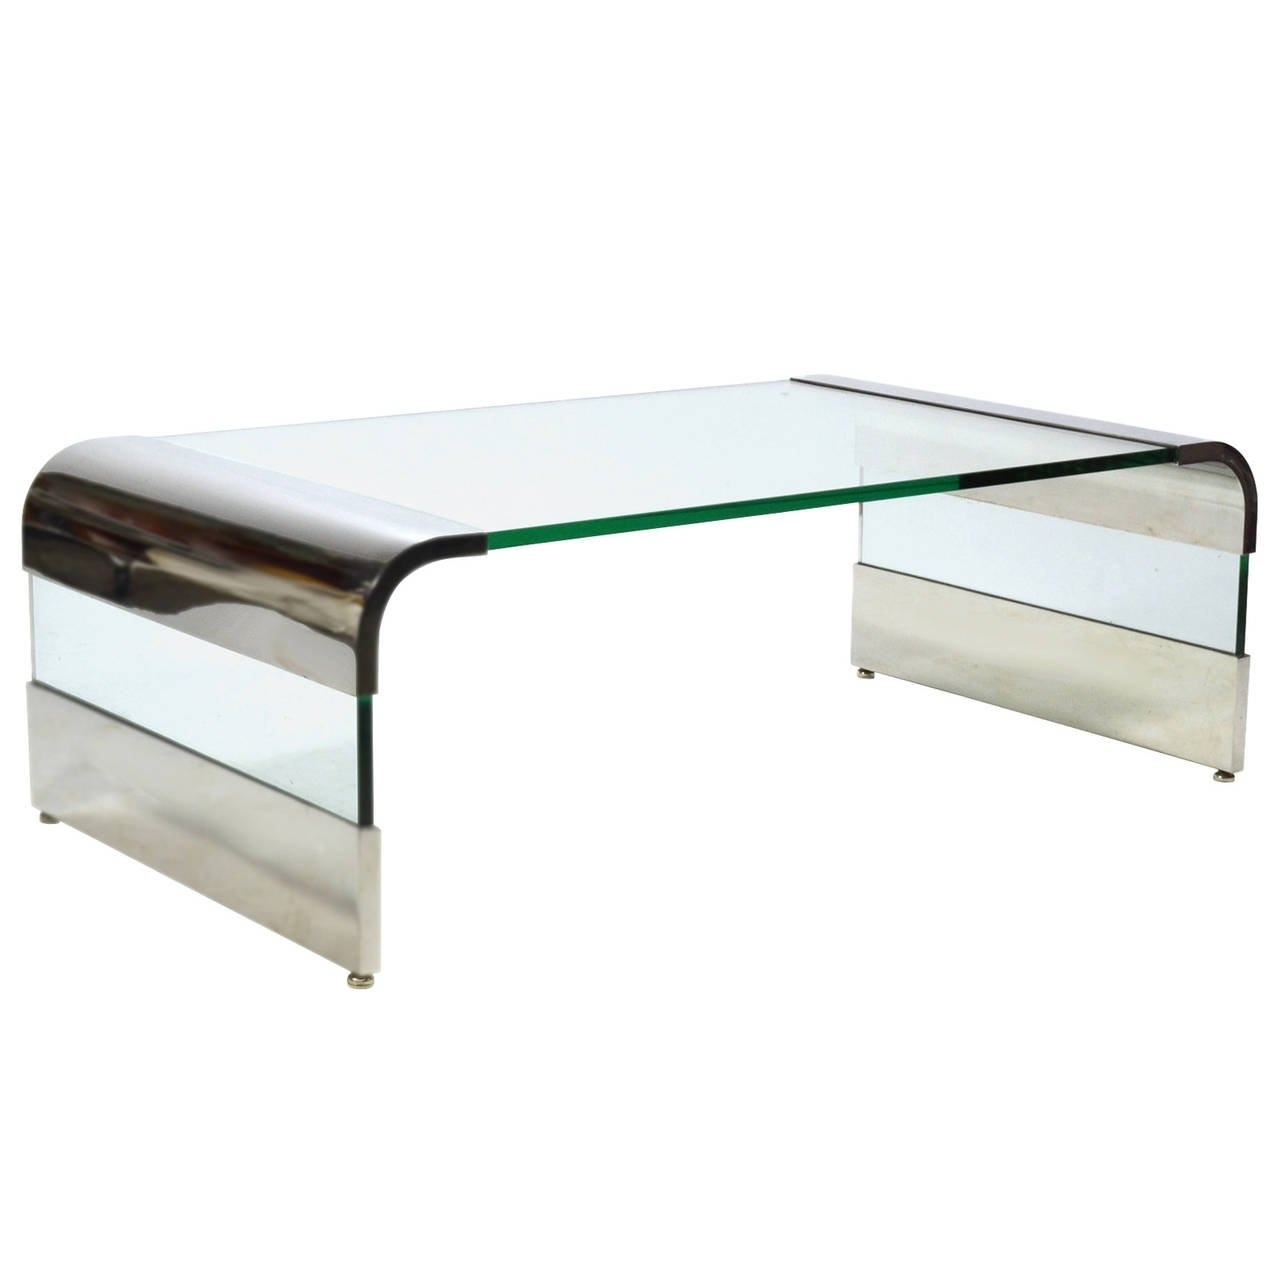 Leon Rosen Chrome And Glass Waterfall Coffee Tablepace For Sale pertaining to Waterfall Coffee Tables (Image 16 of 30)